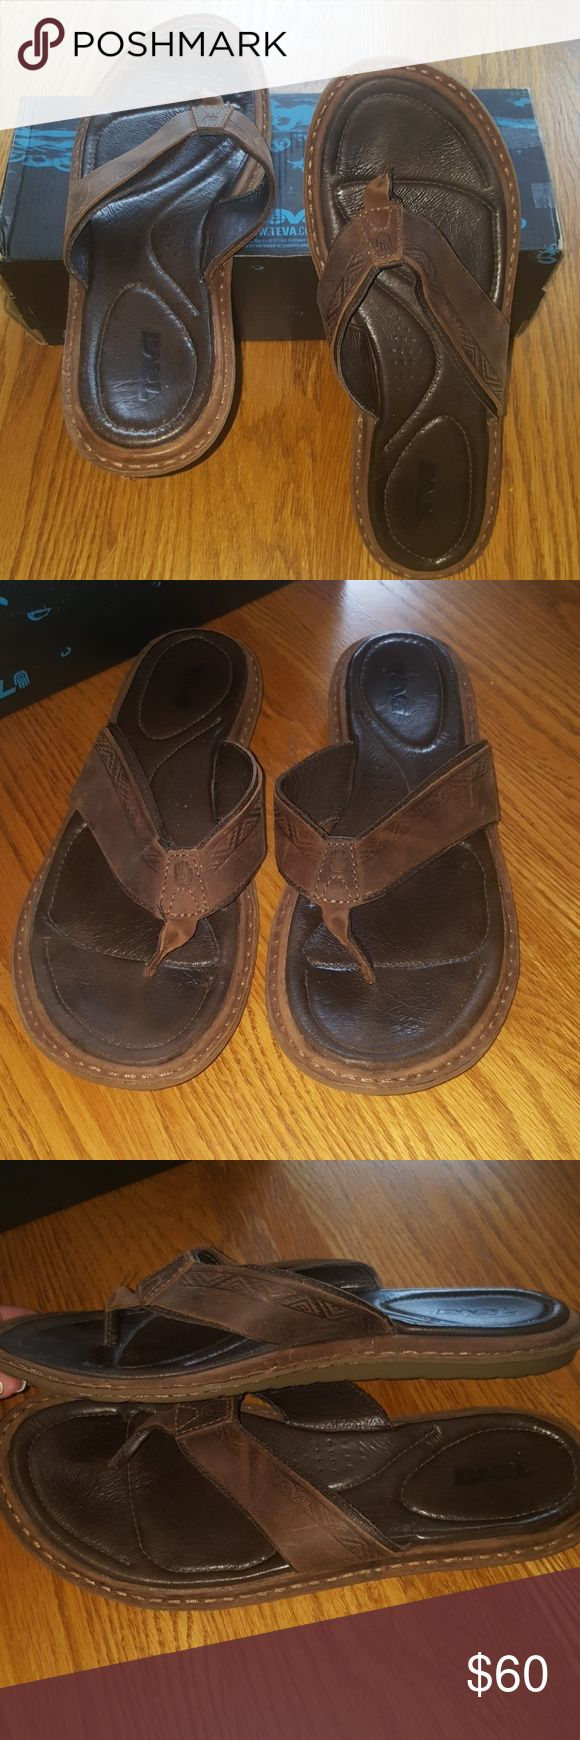 MEN'S TEVA SANDALS Teva Mens Benson ~ Brown Leather ~                           Purchased for my husband, wrong size ~                     These are brand new, in original box ~ Teva Shoes Sandals & Flip-Flops